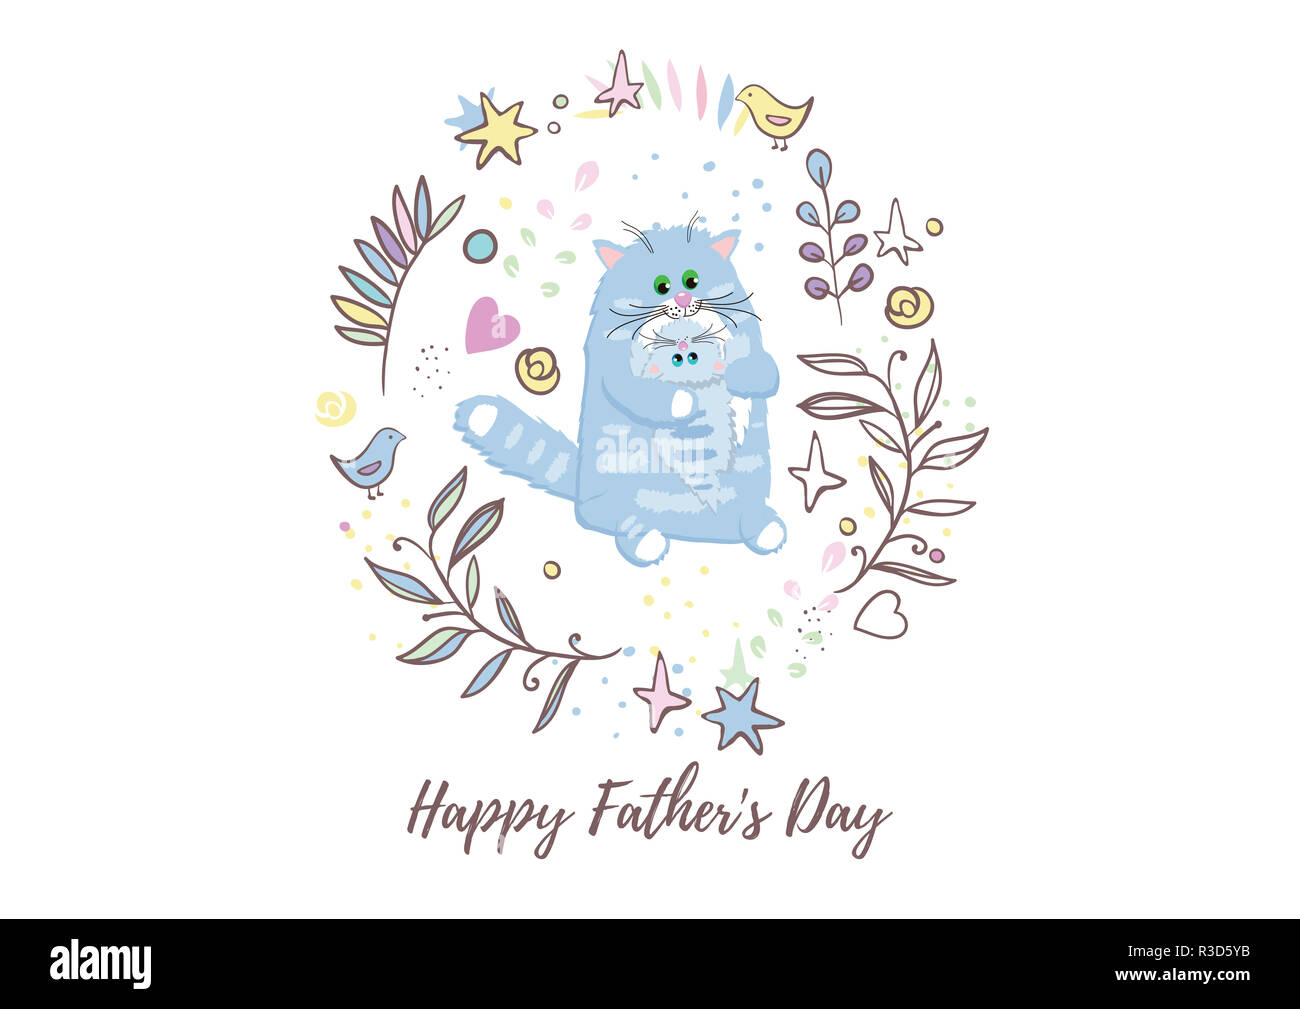 Weihnachtswünsche Modern.Holiday Greetings Illustration Father S Day Illustration For You